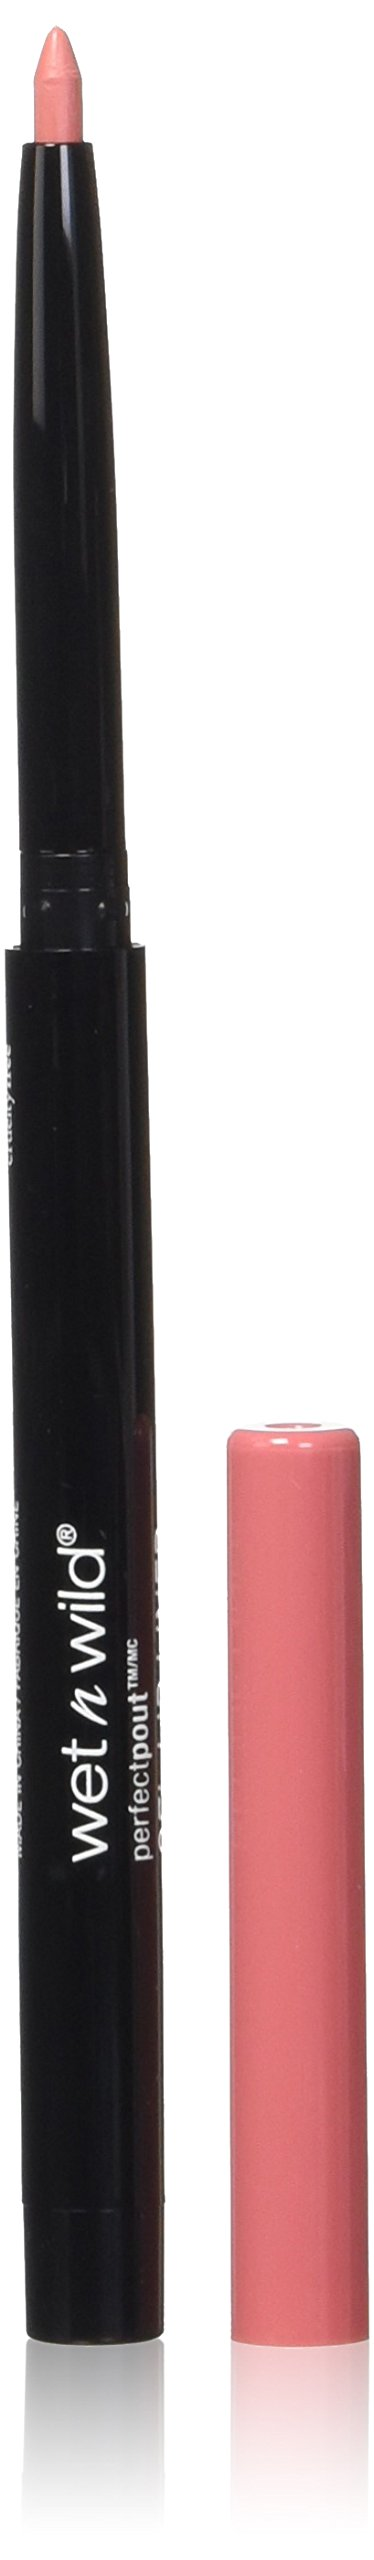 Wet N Wild Perfect Pout Gel Lip Liner #655A Think Flamingos - 0.008 Oz/0.25 g